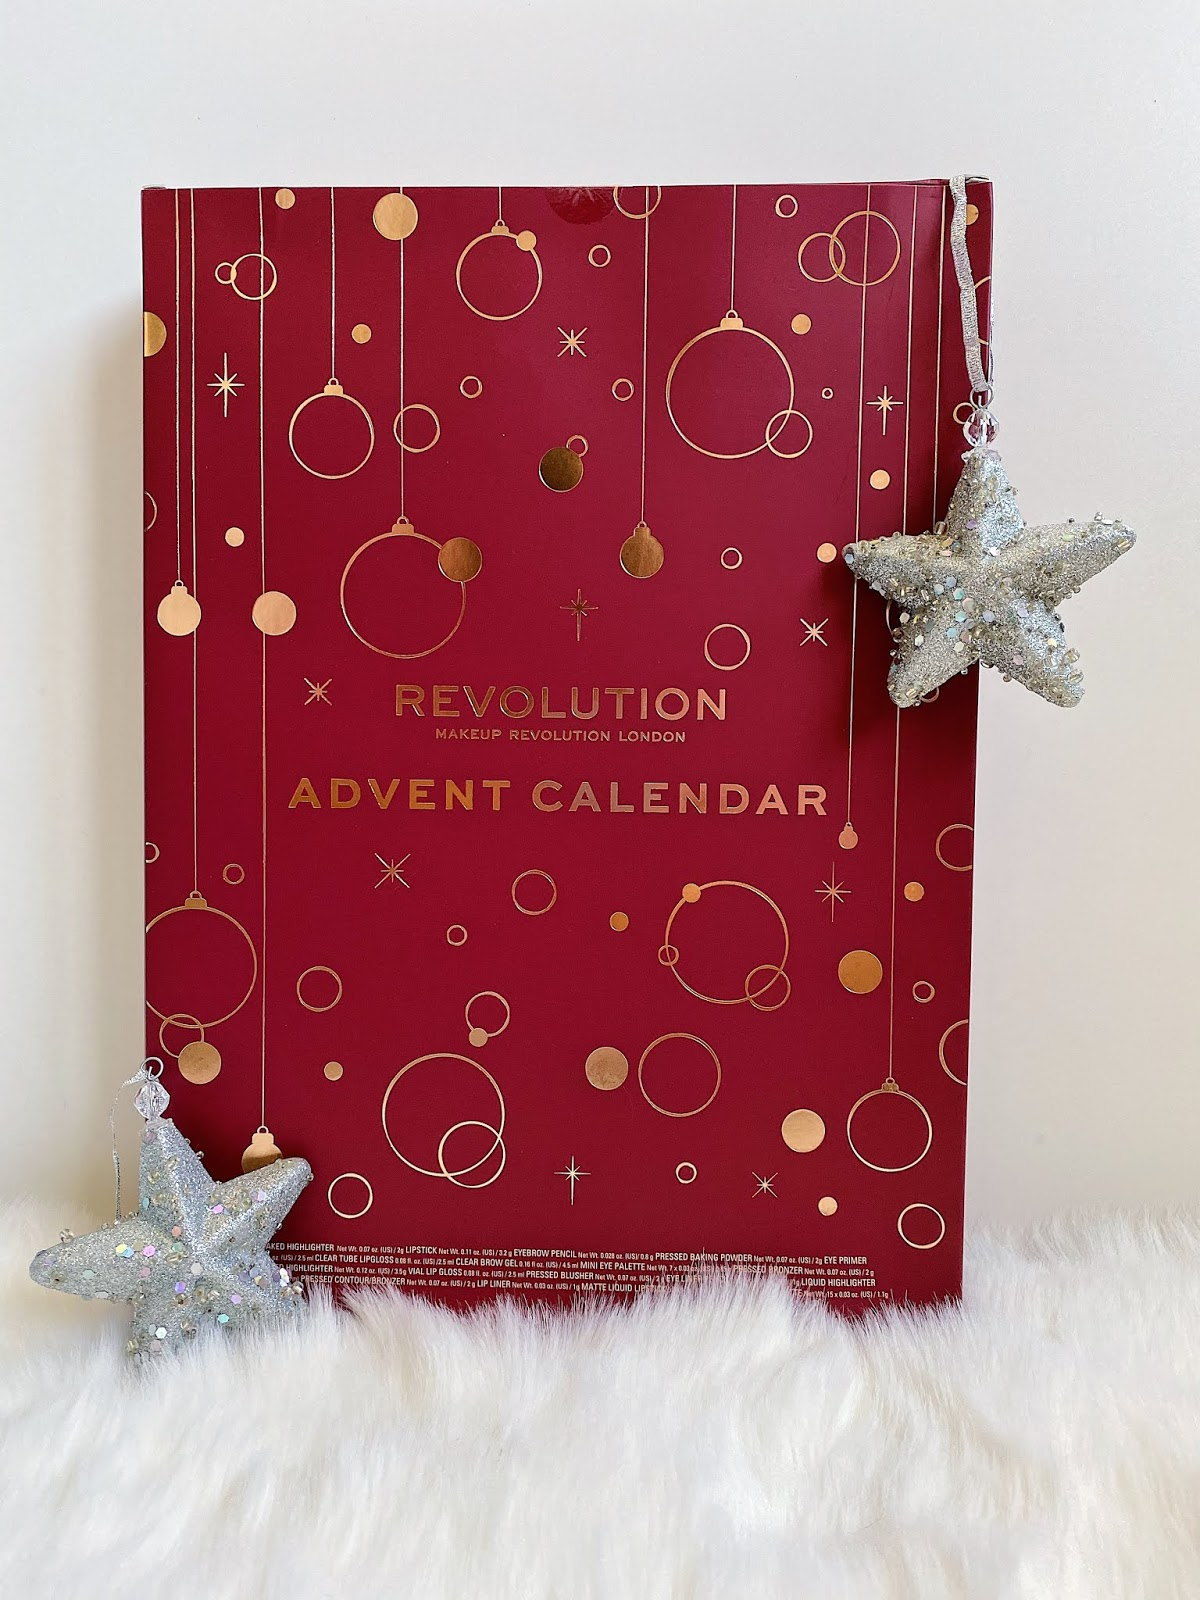 Makeup Revolution Advent Calendar 2019 christmas giveaway instagram Notino